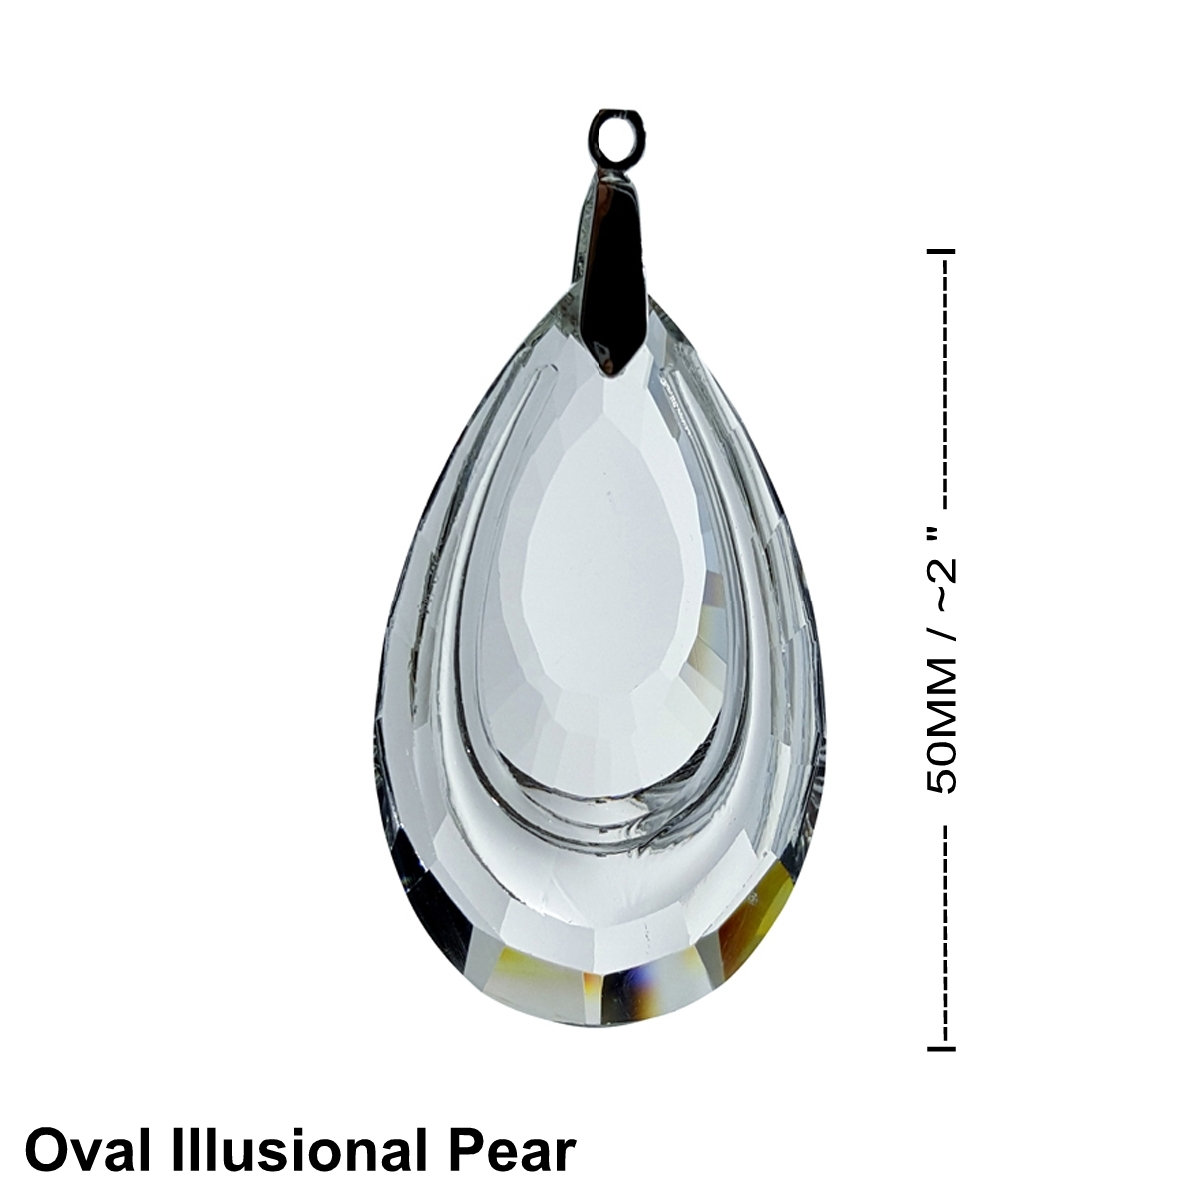 Crystal Circular Illusion Pear Feng Shui Window Prism 50mm / 2 I